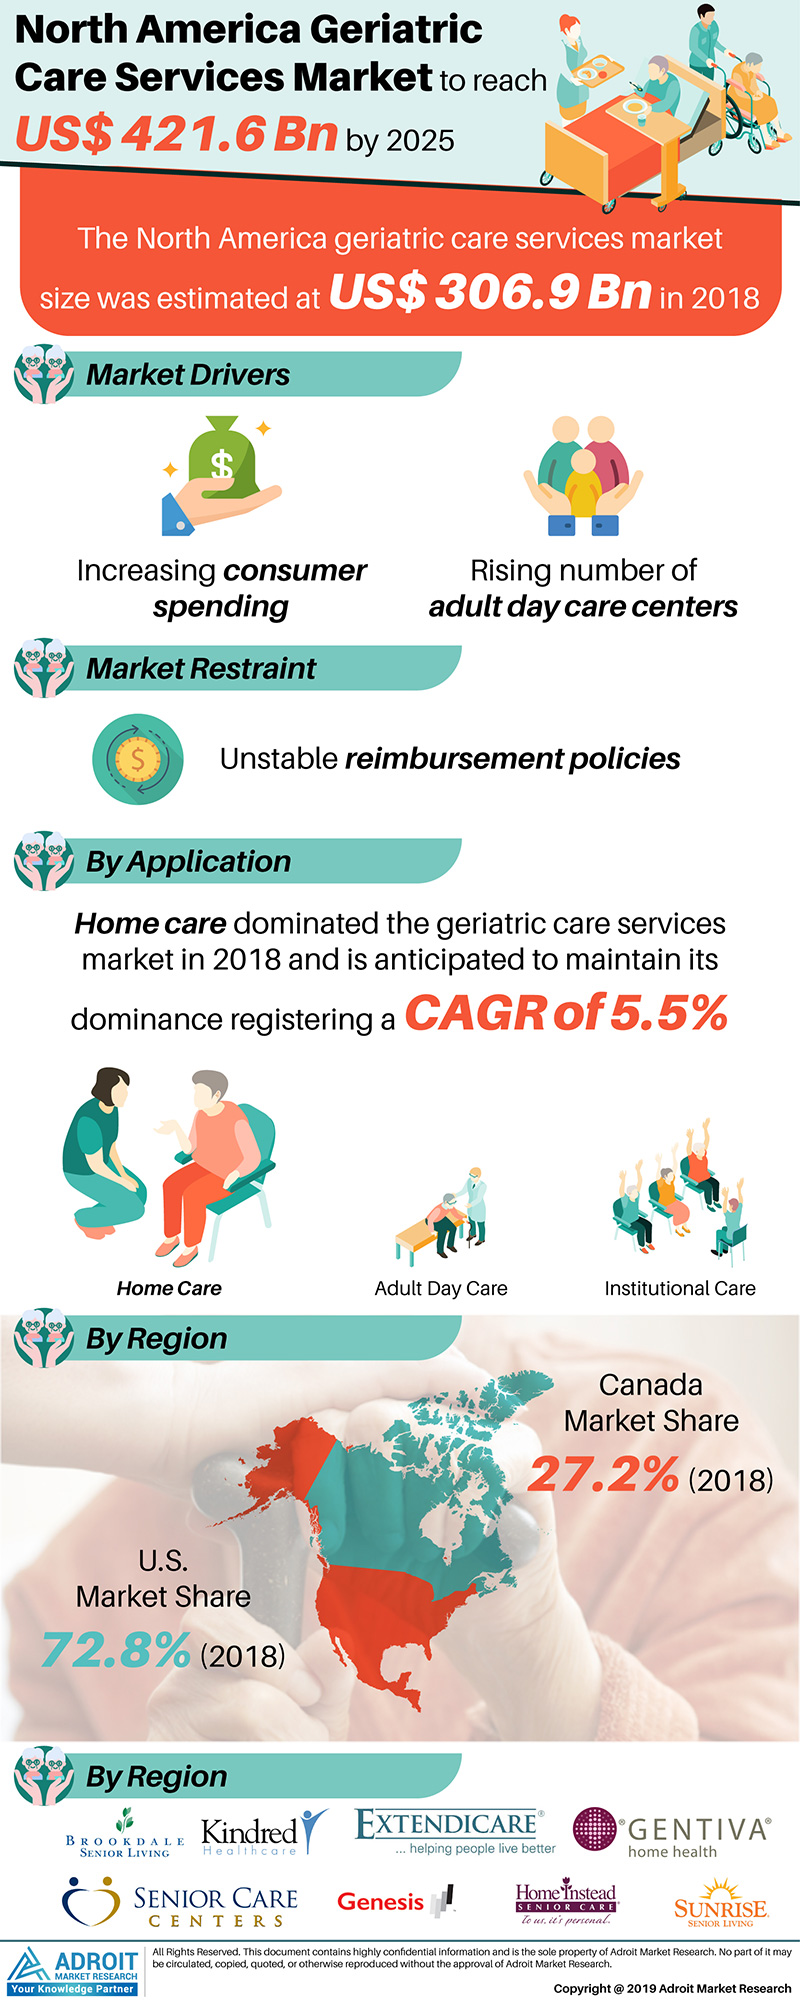 Global North America Geriatric Care Services Market Size 2017 By Type, Country and Forecast 2018 to 2025